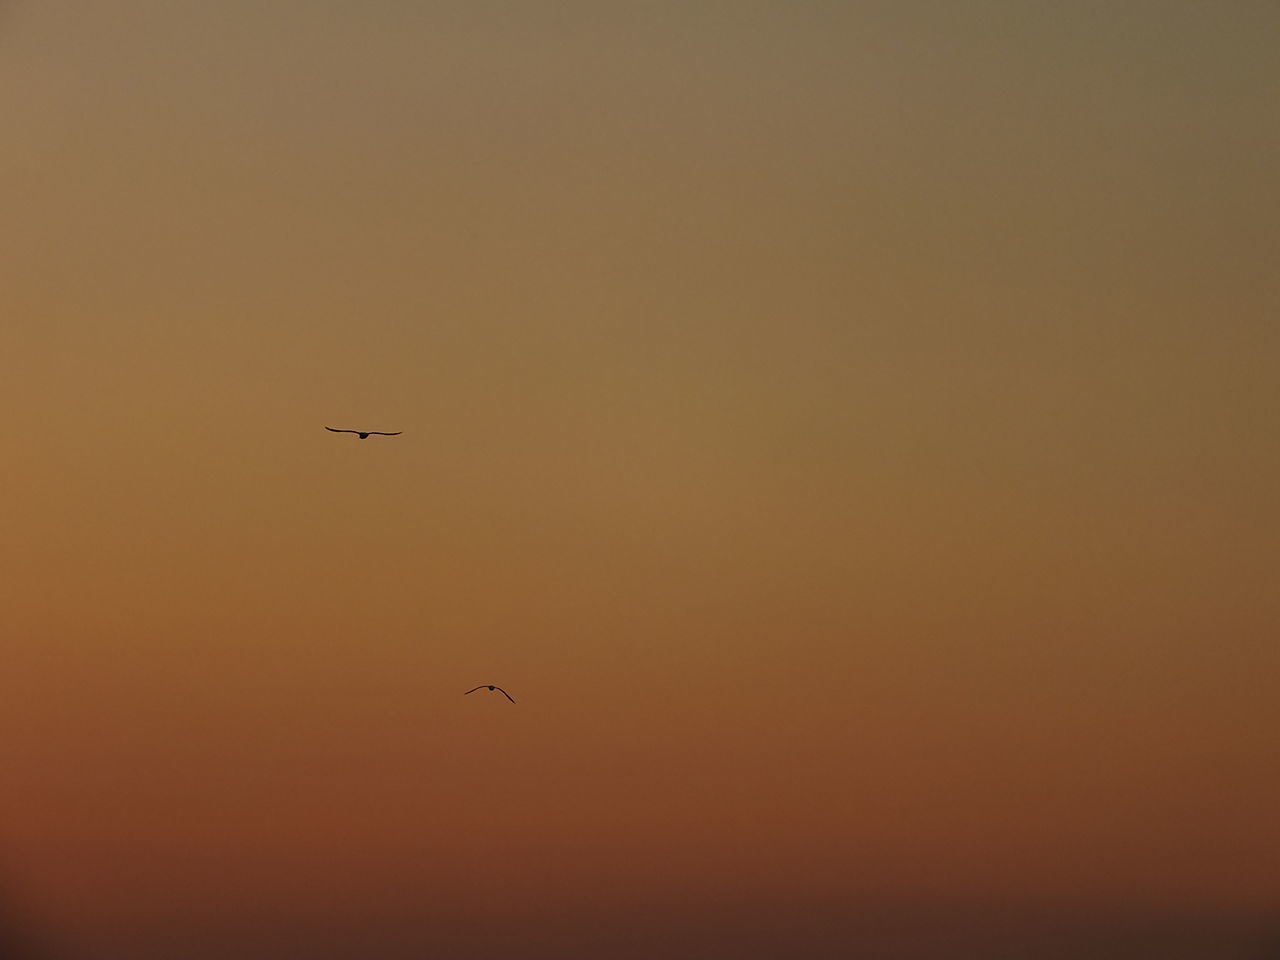 #birds #Nature  #sky #sunset #sun #clouds #skylovers #sky #nature #beautifulinnature #naturalbeauty #photography #landscape #two_birds